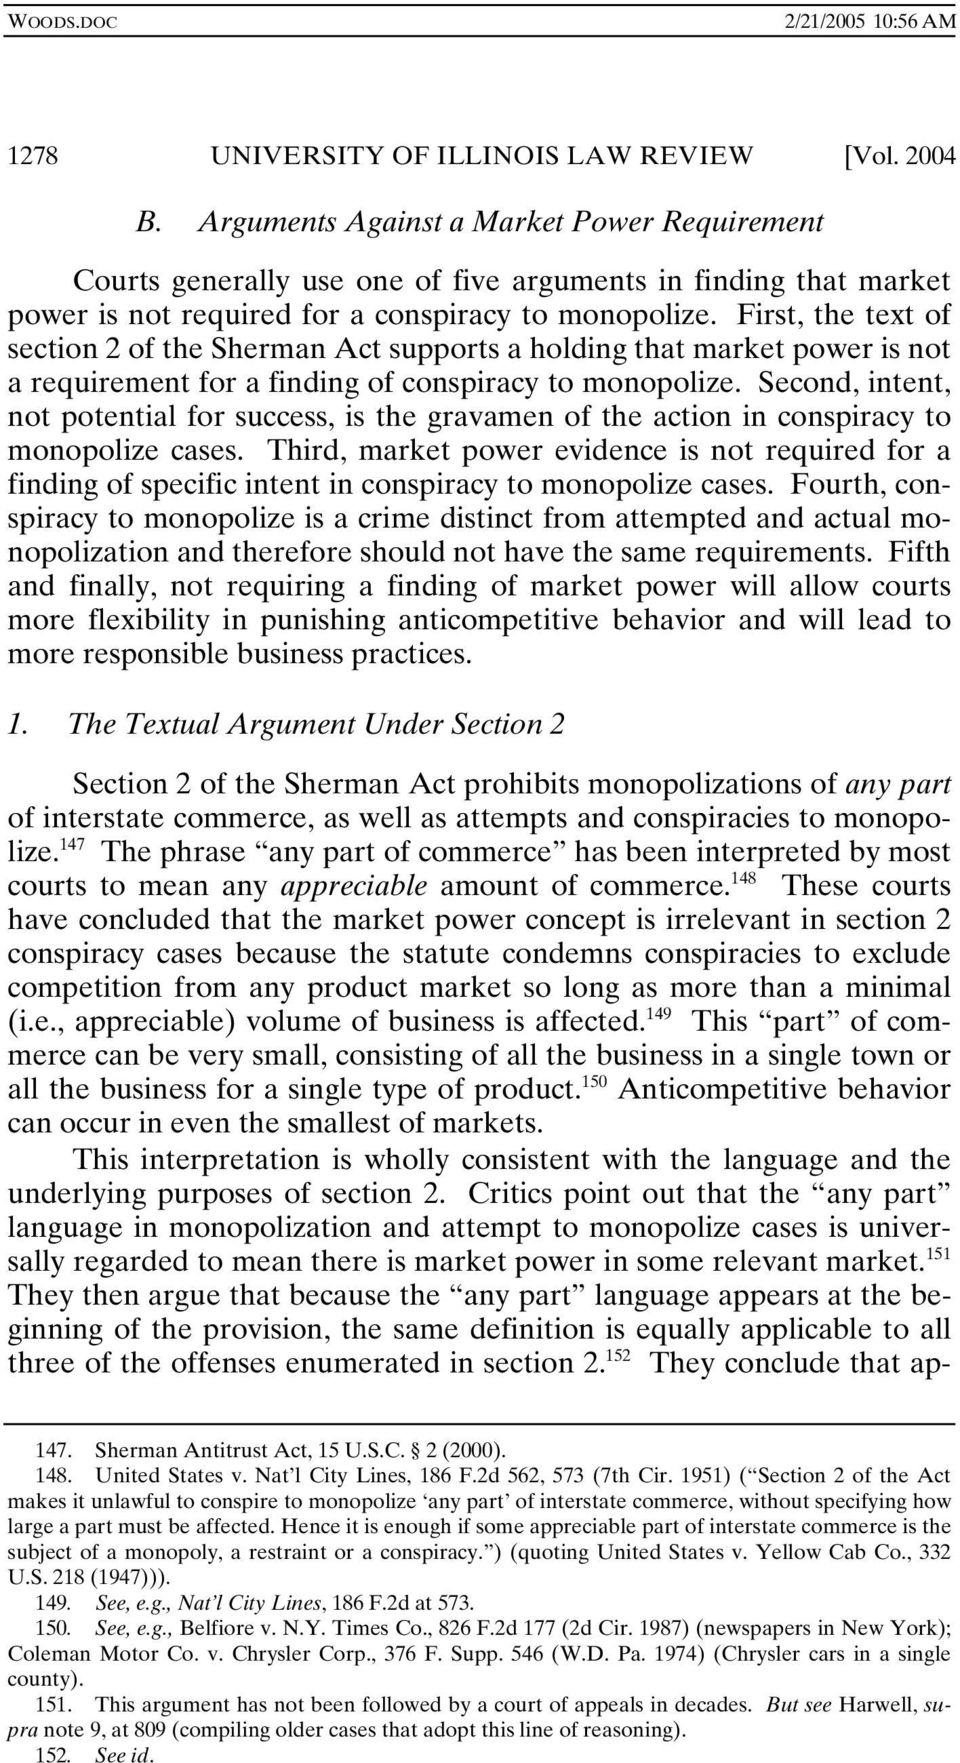 First, the text of section 2 of the Sherman Act supports a holding that market power is not a requirement for a finding of conspiracy to monopolize.